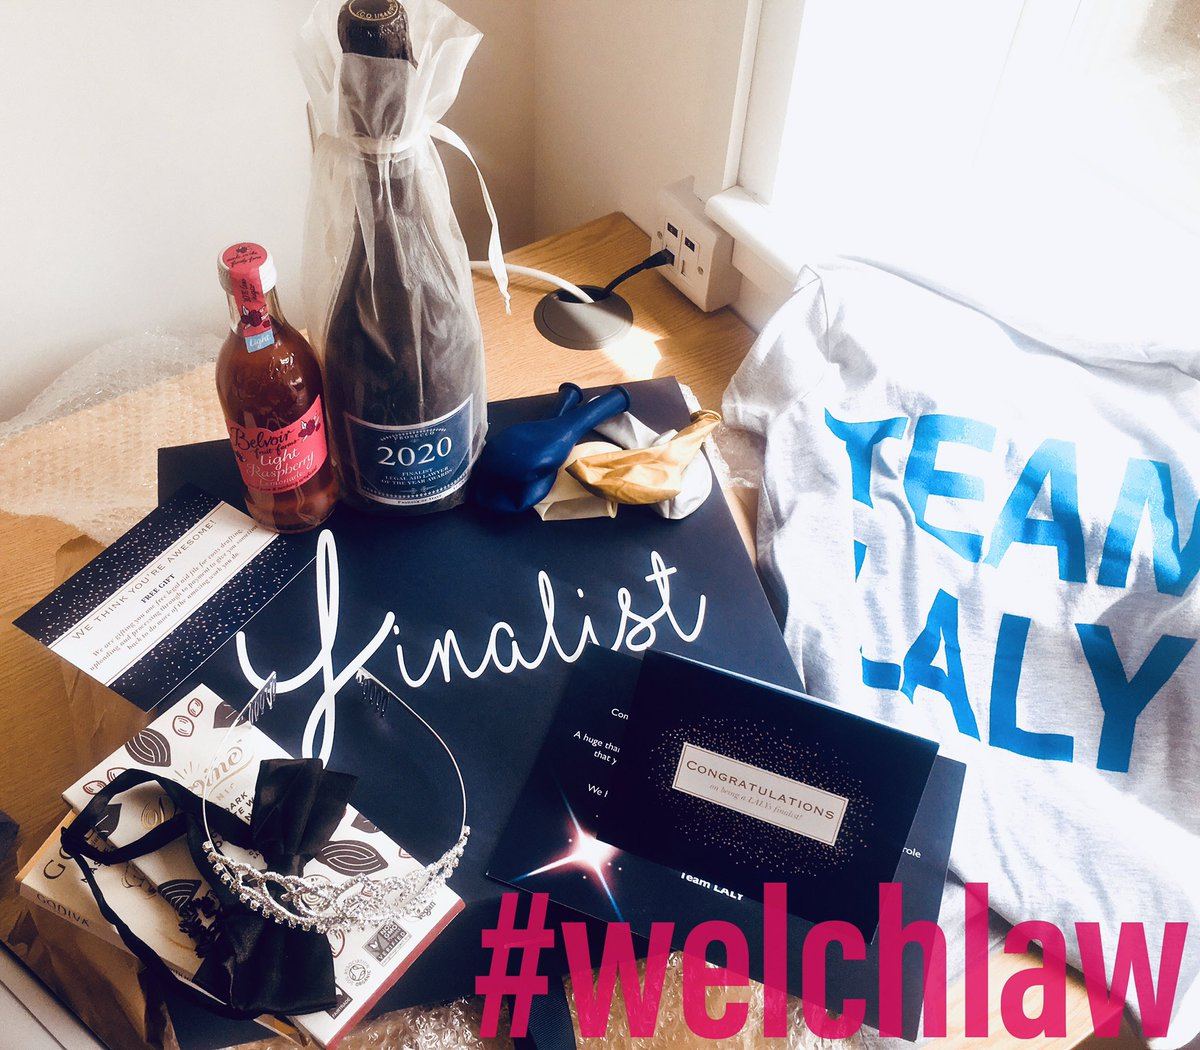 Lots of excitement in the #welchlaw Ceredigion office this morning... Postman's been! The finalists #laly20 hamper has arrived 🥂🎉! Lots of fab goodies, thank you #teamlaly #justiceheroes #accesstojustice #lalyawards https://t.co/nnVg2ROxpK